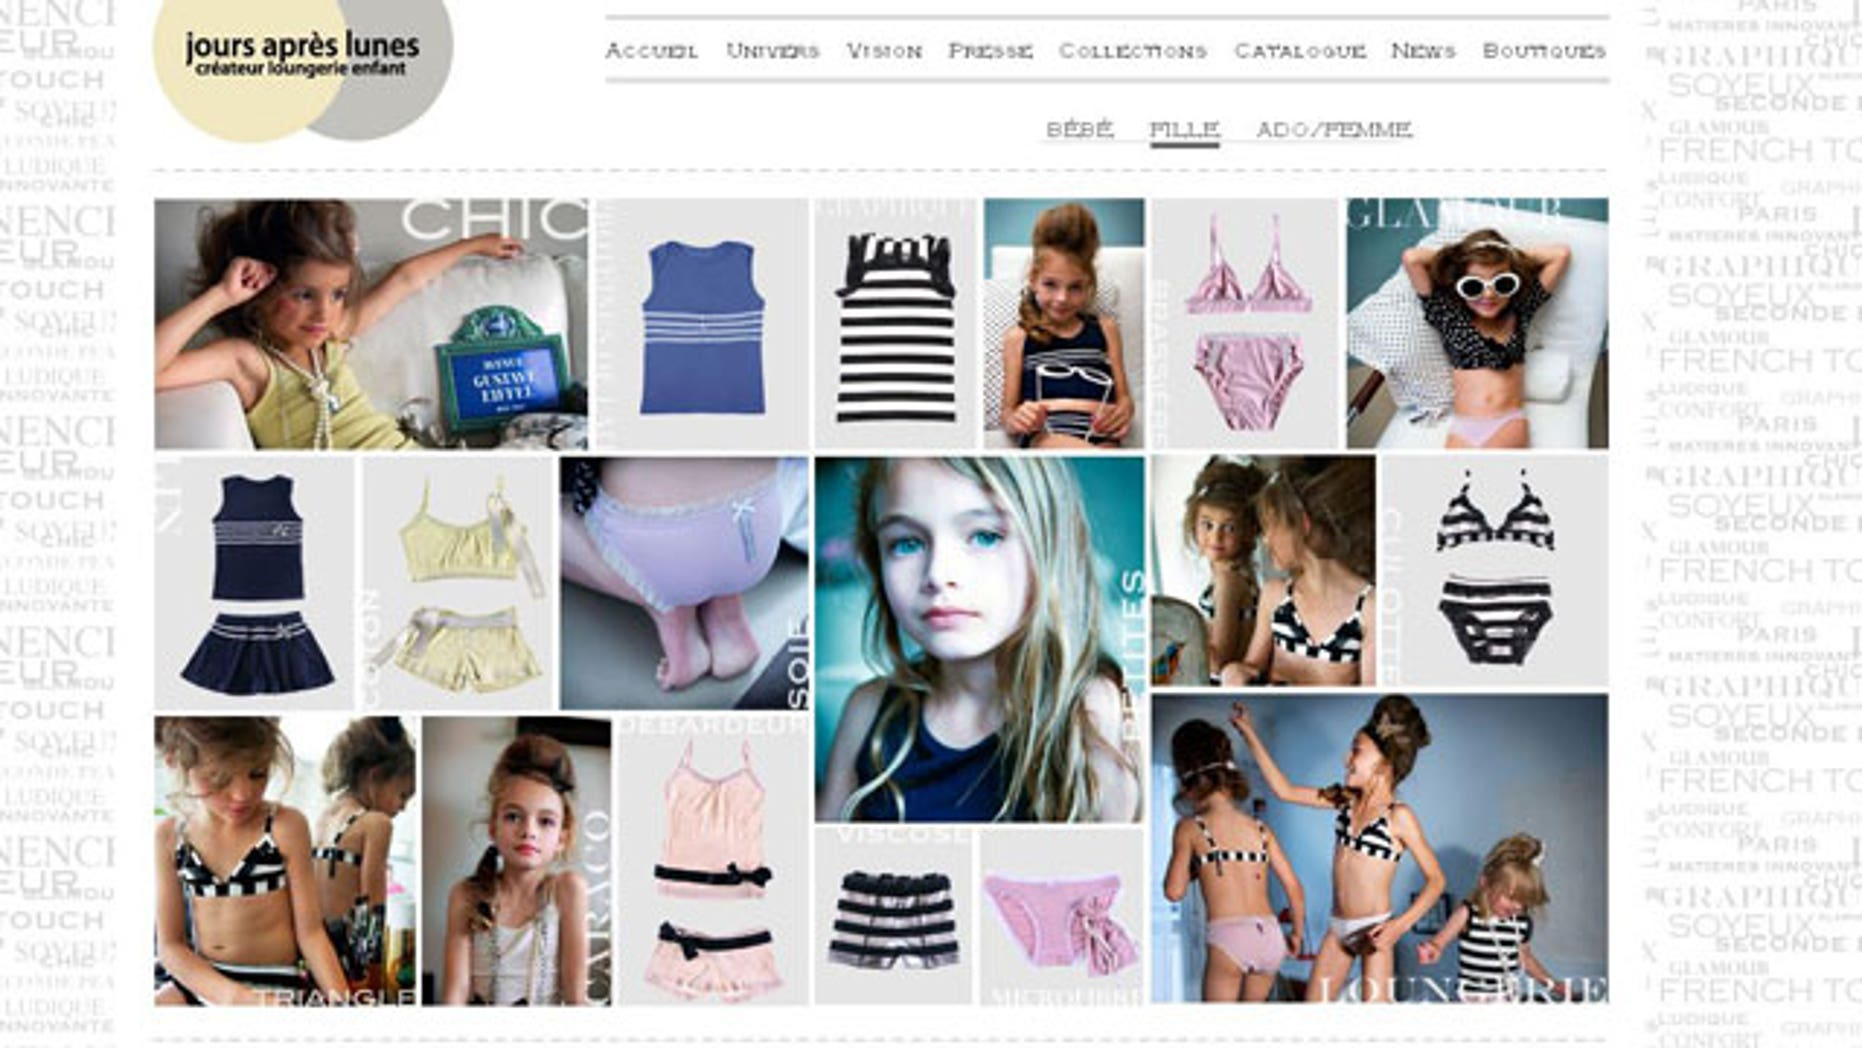 A screen grab from www.jours-apres-lunes.com shows children styled as adults in underwear.